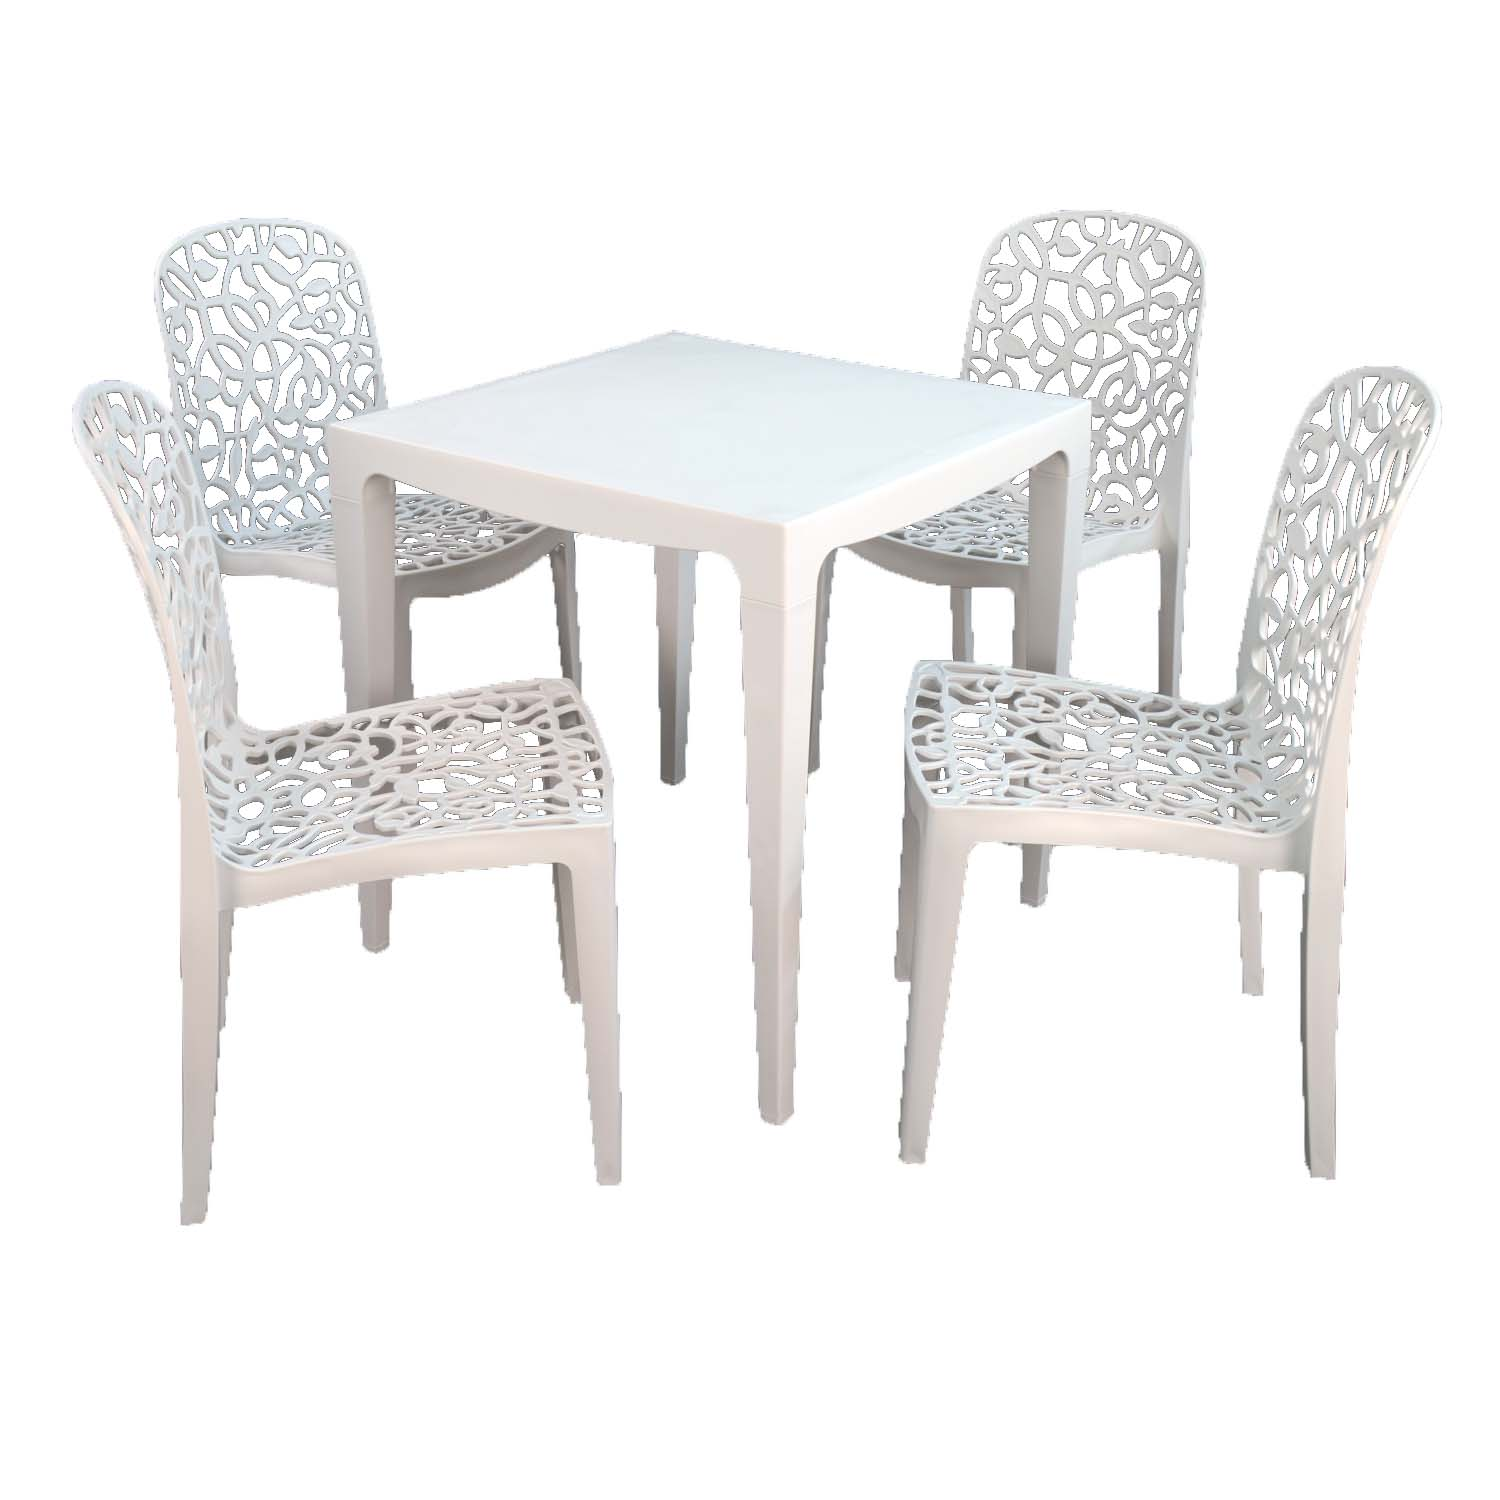 MASTER DINING TABLE WITH 4 FLEURA CHAIRS WHITE